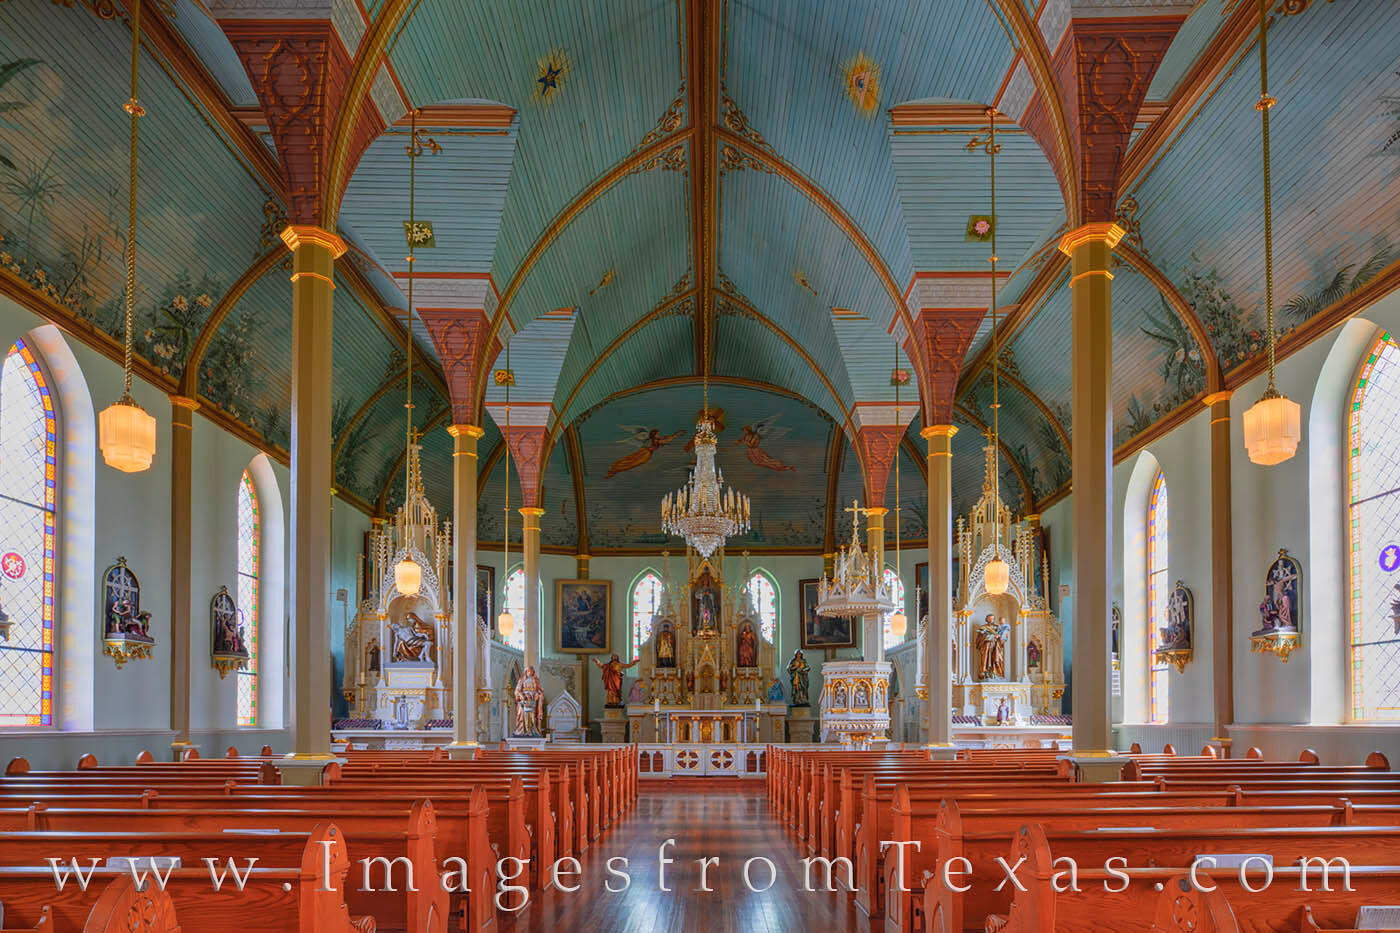 As one of the oldest of the Painted Churches in Texas, St. Mary's Church of the Assumption in Praha was built in 1895. As you...